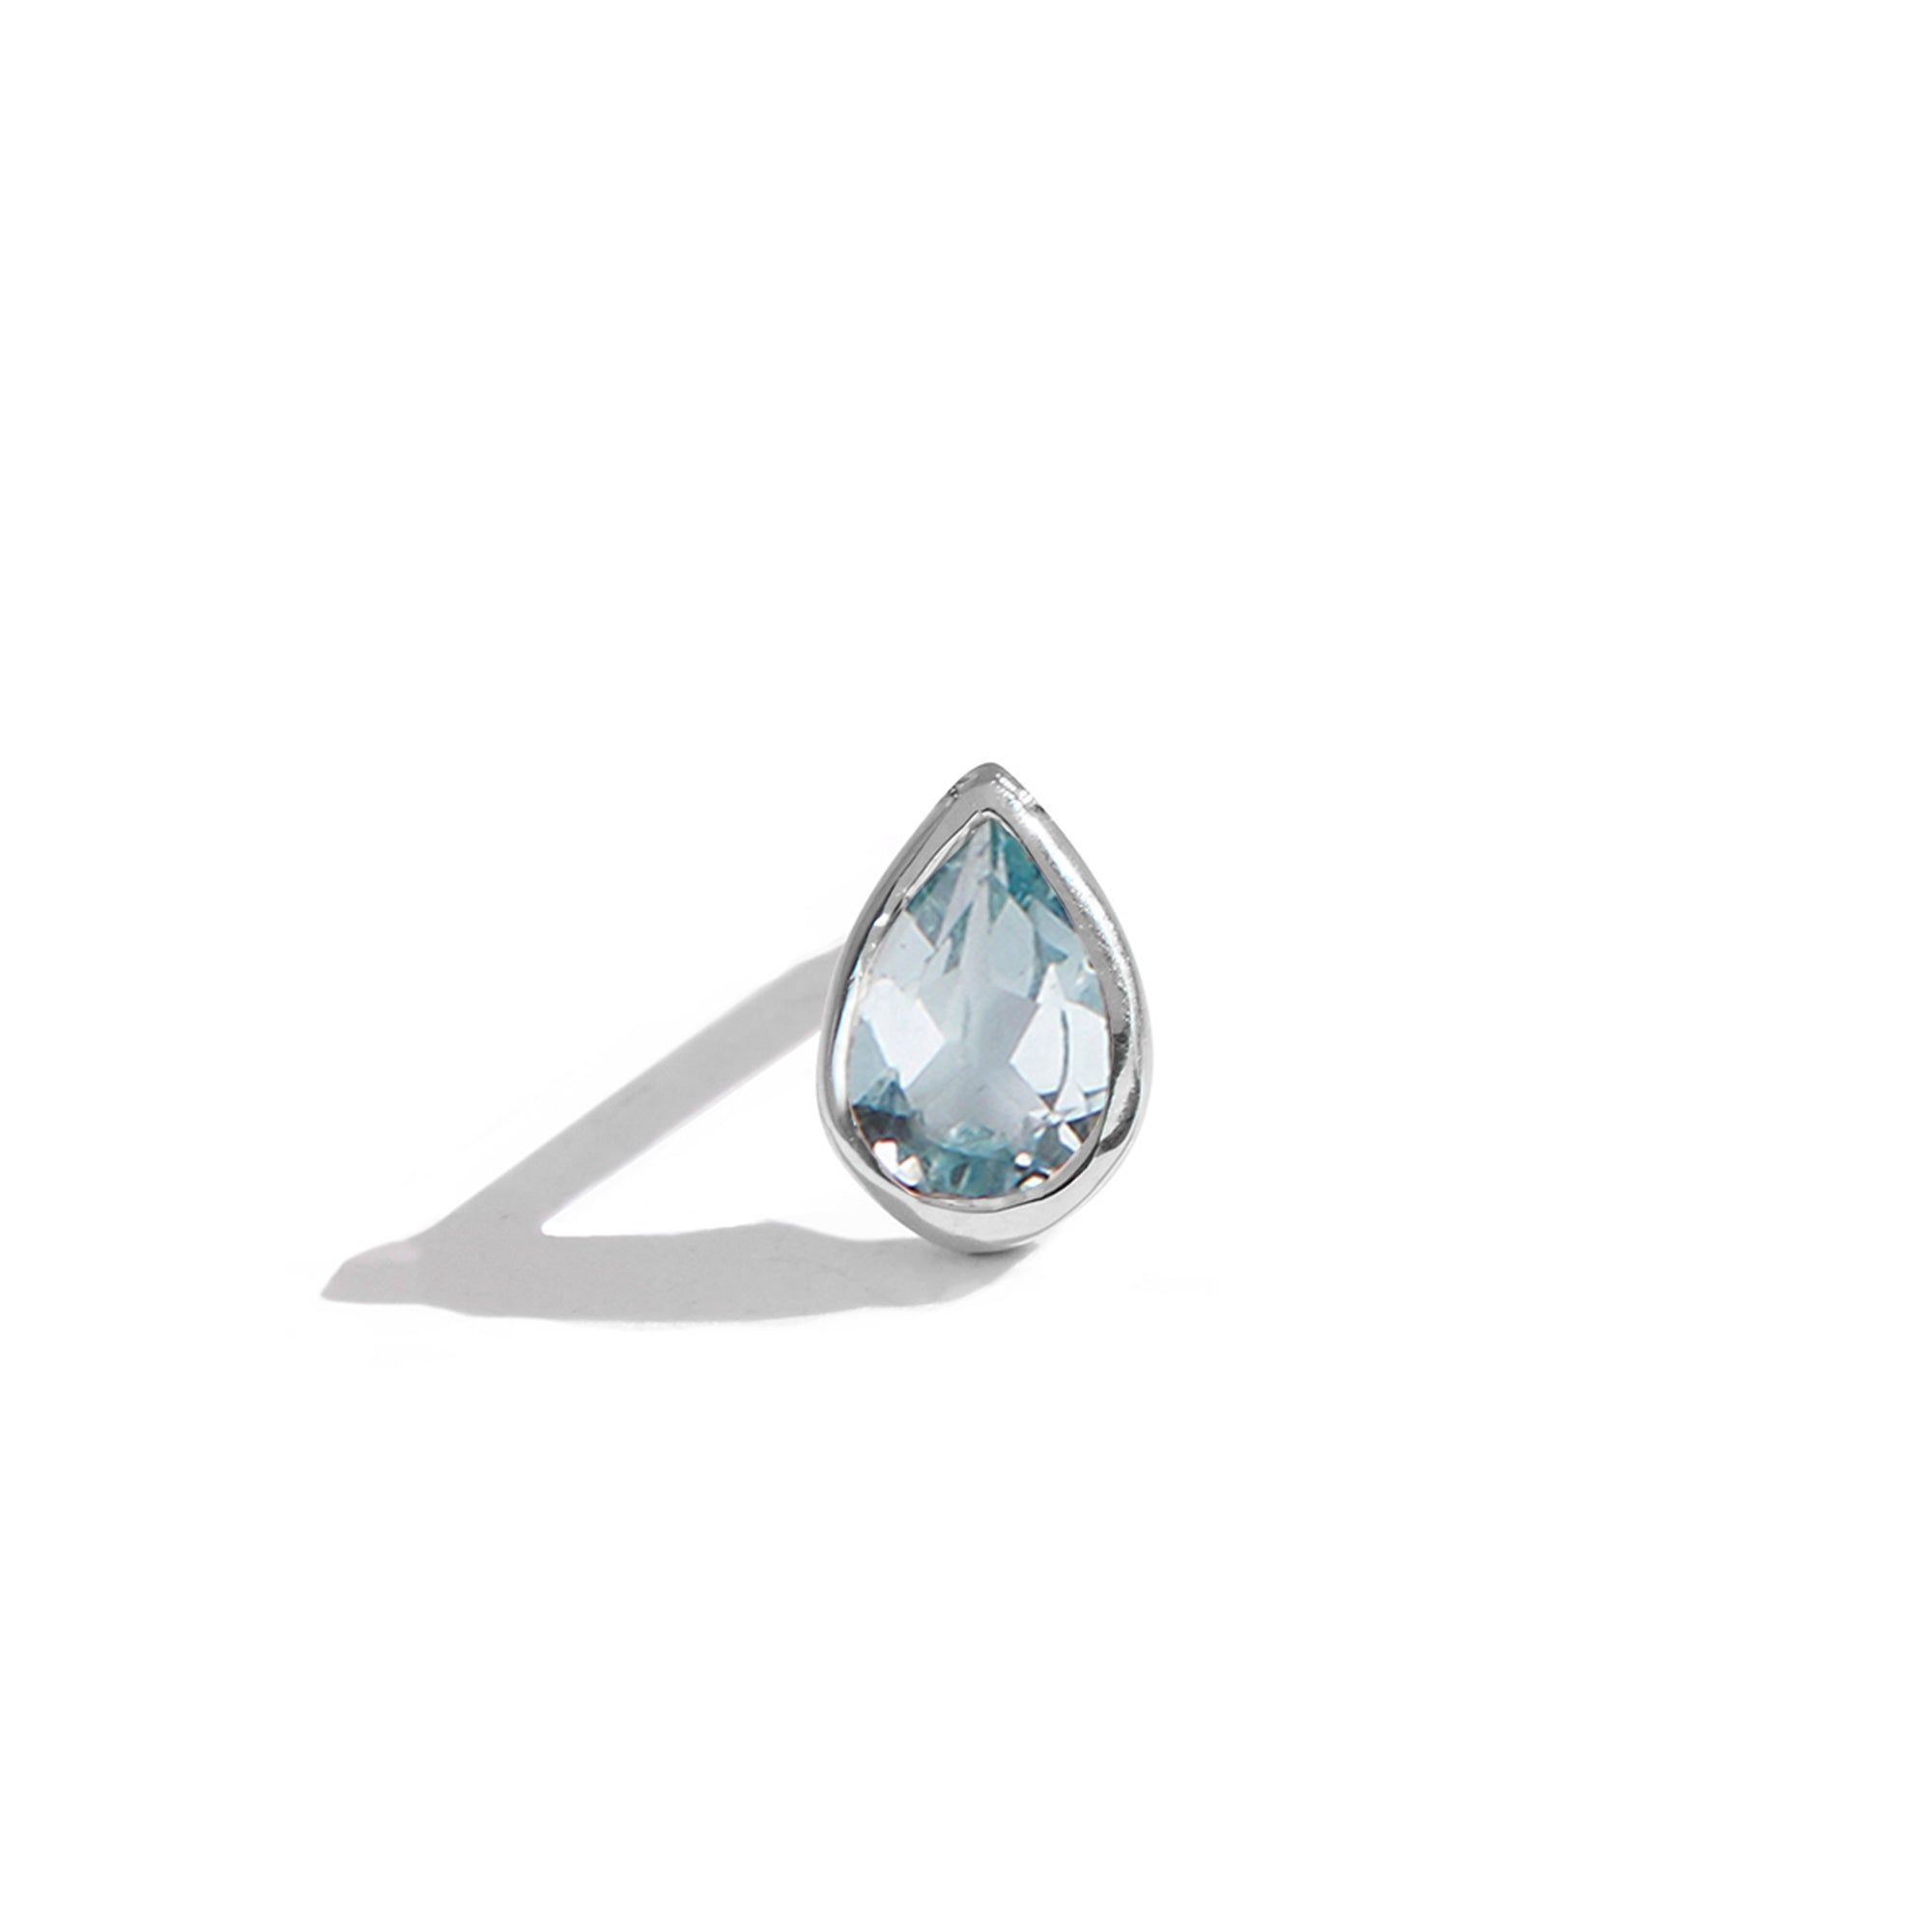 The 6x4 Pear Cut Stone Stud in Silver